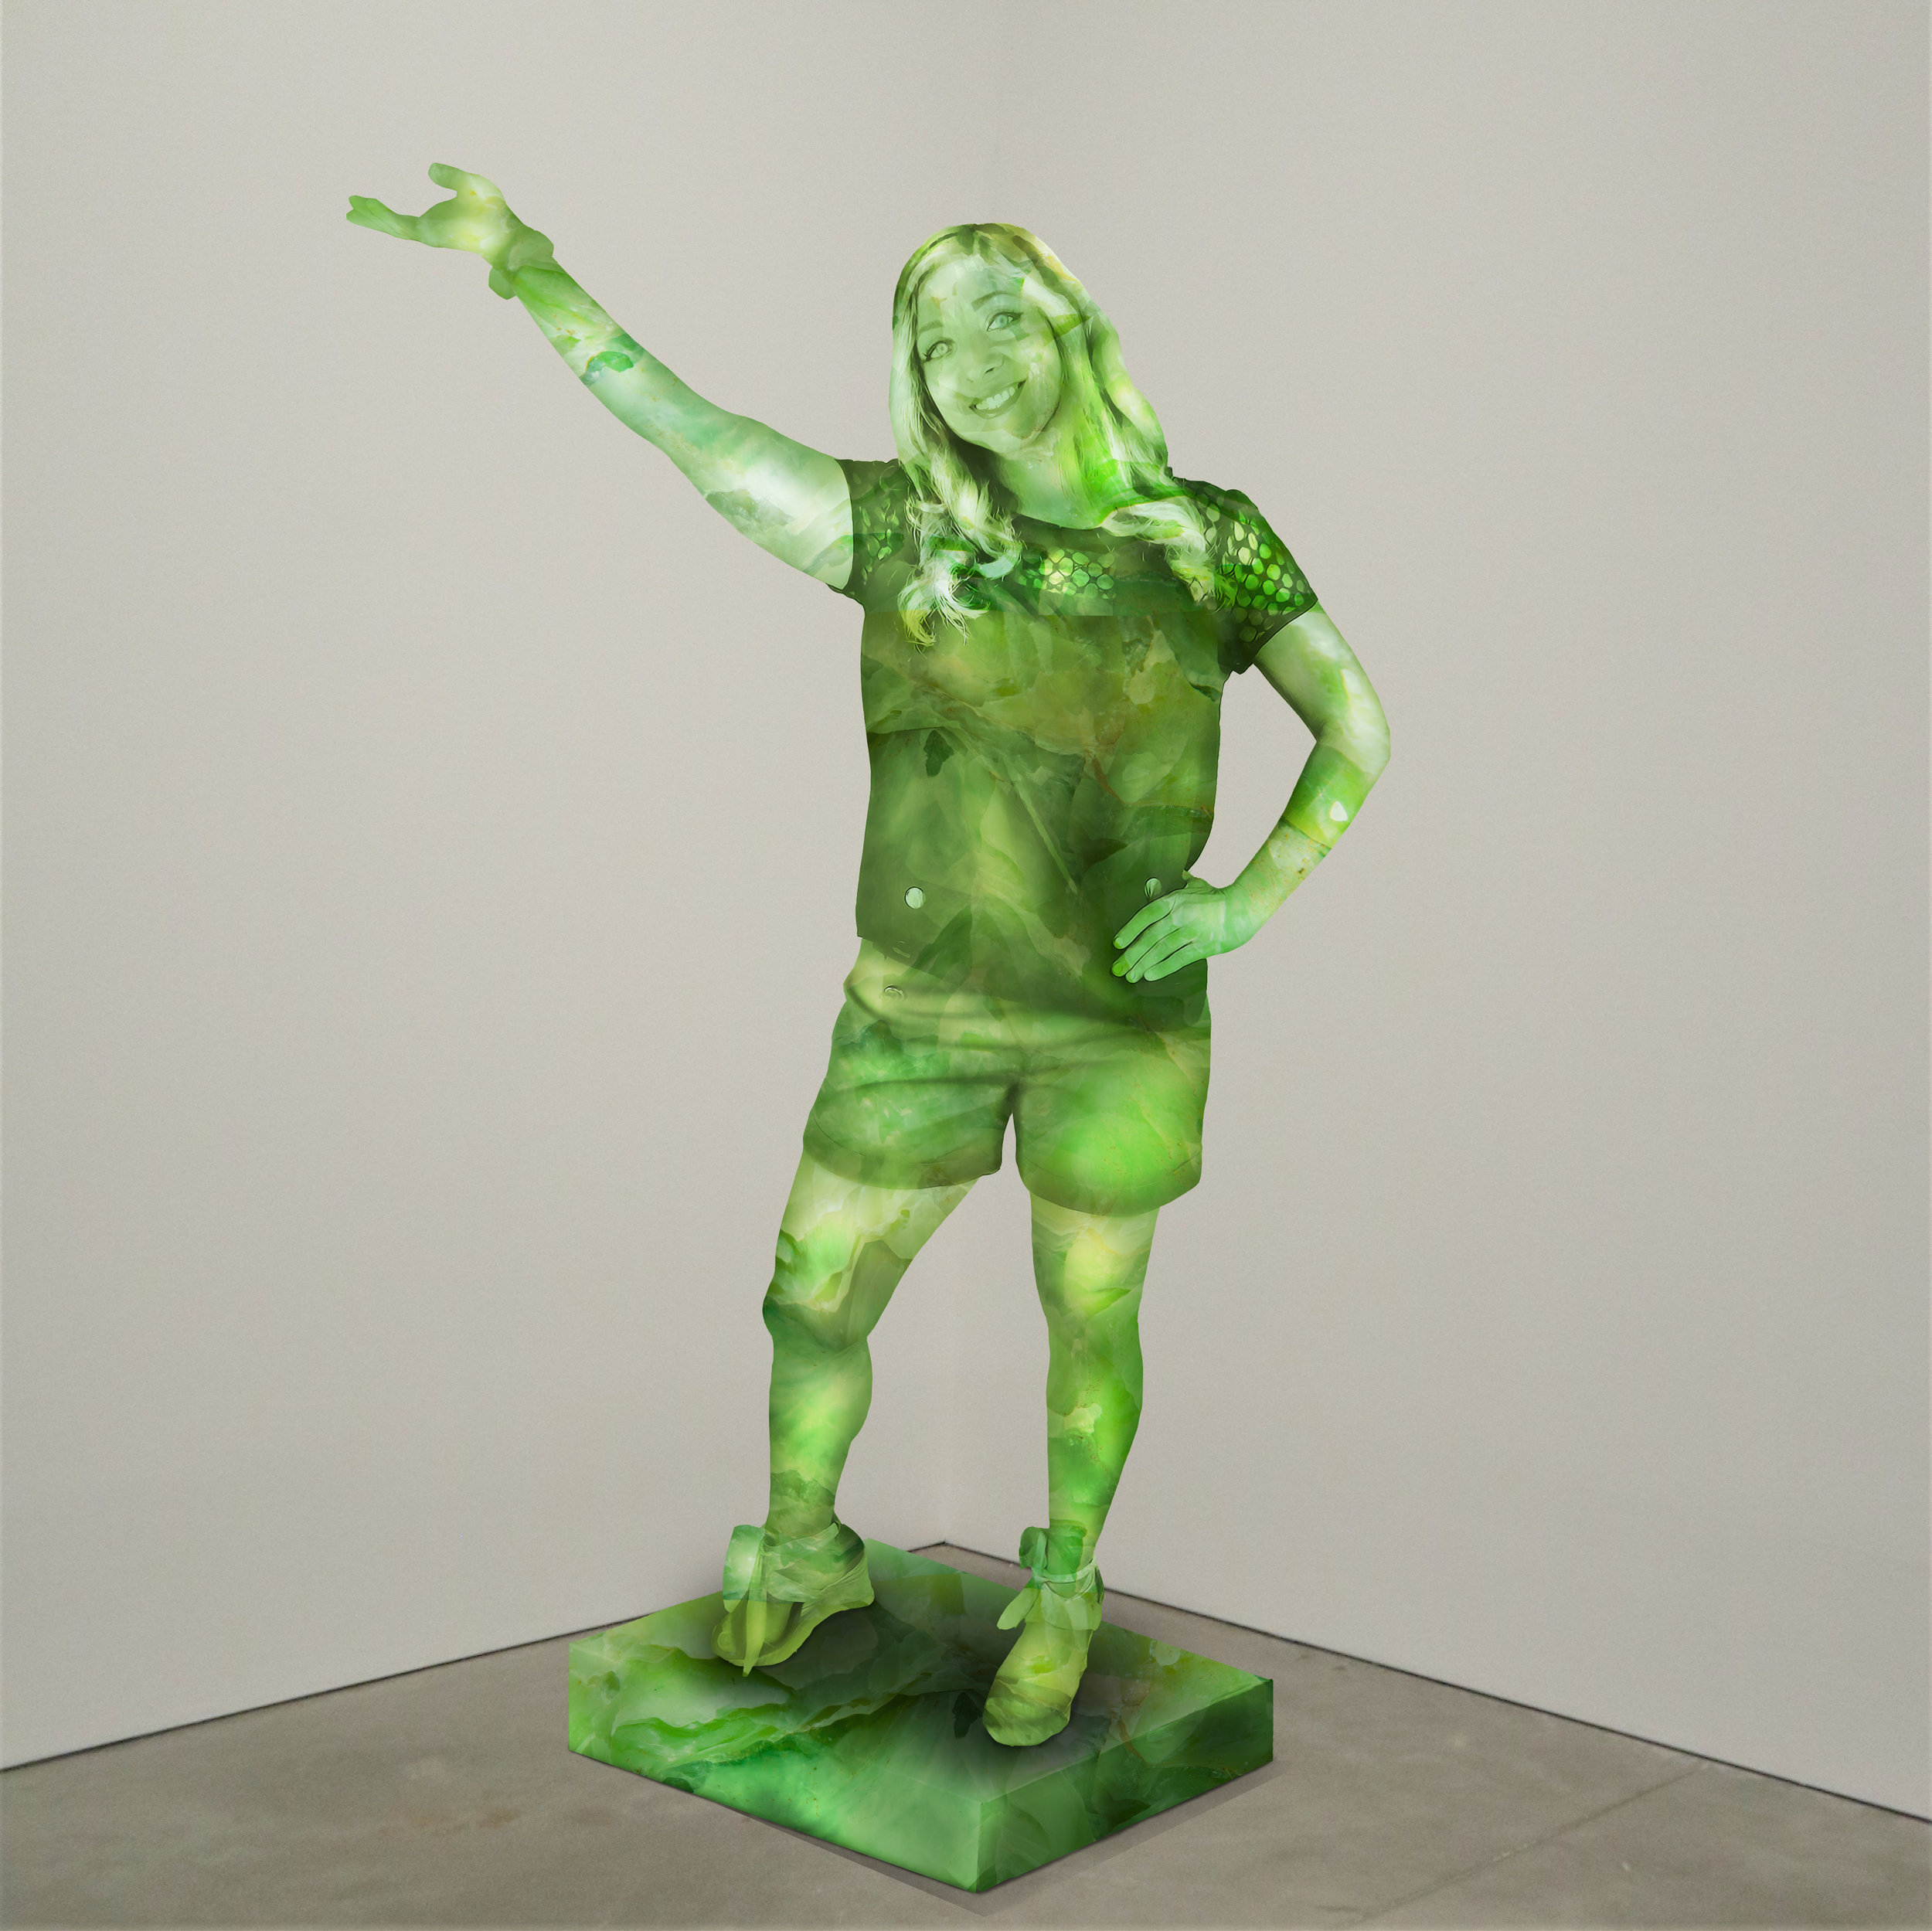 """Free Spirit"" jade, Institute of Contemporary Art, Boston   2018  JPG  During an installation at the Institute of Contemporary Art in Boston, viewers were invited to imagine themselves as statues in the ICA's permanent collection. Participants were photographed posing as a statue they felt represented themselves, created a name for their fictional statue, and selected a stone from which their statue would be made. Professional and amateur digital artists were commissioned to create renderings of the statues, which were superimposed on photos of the ICA's permanent collection gallery space."